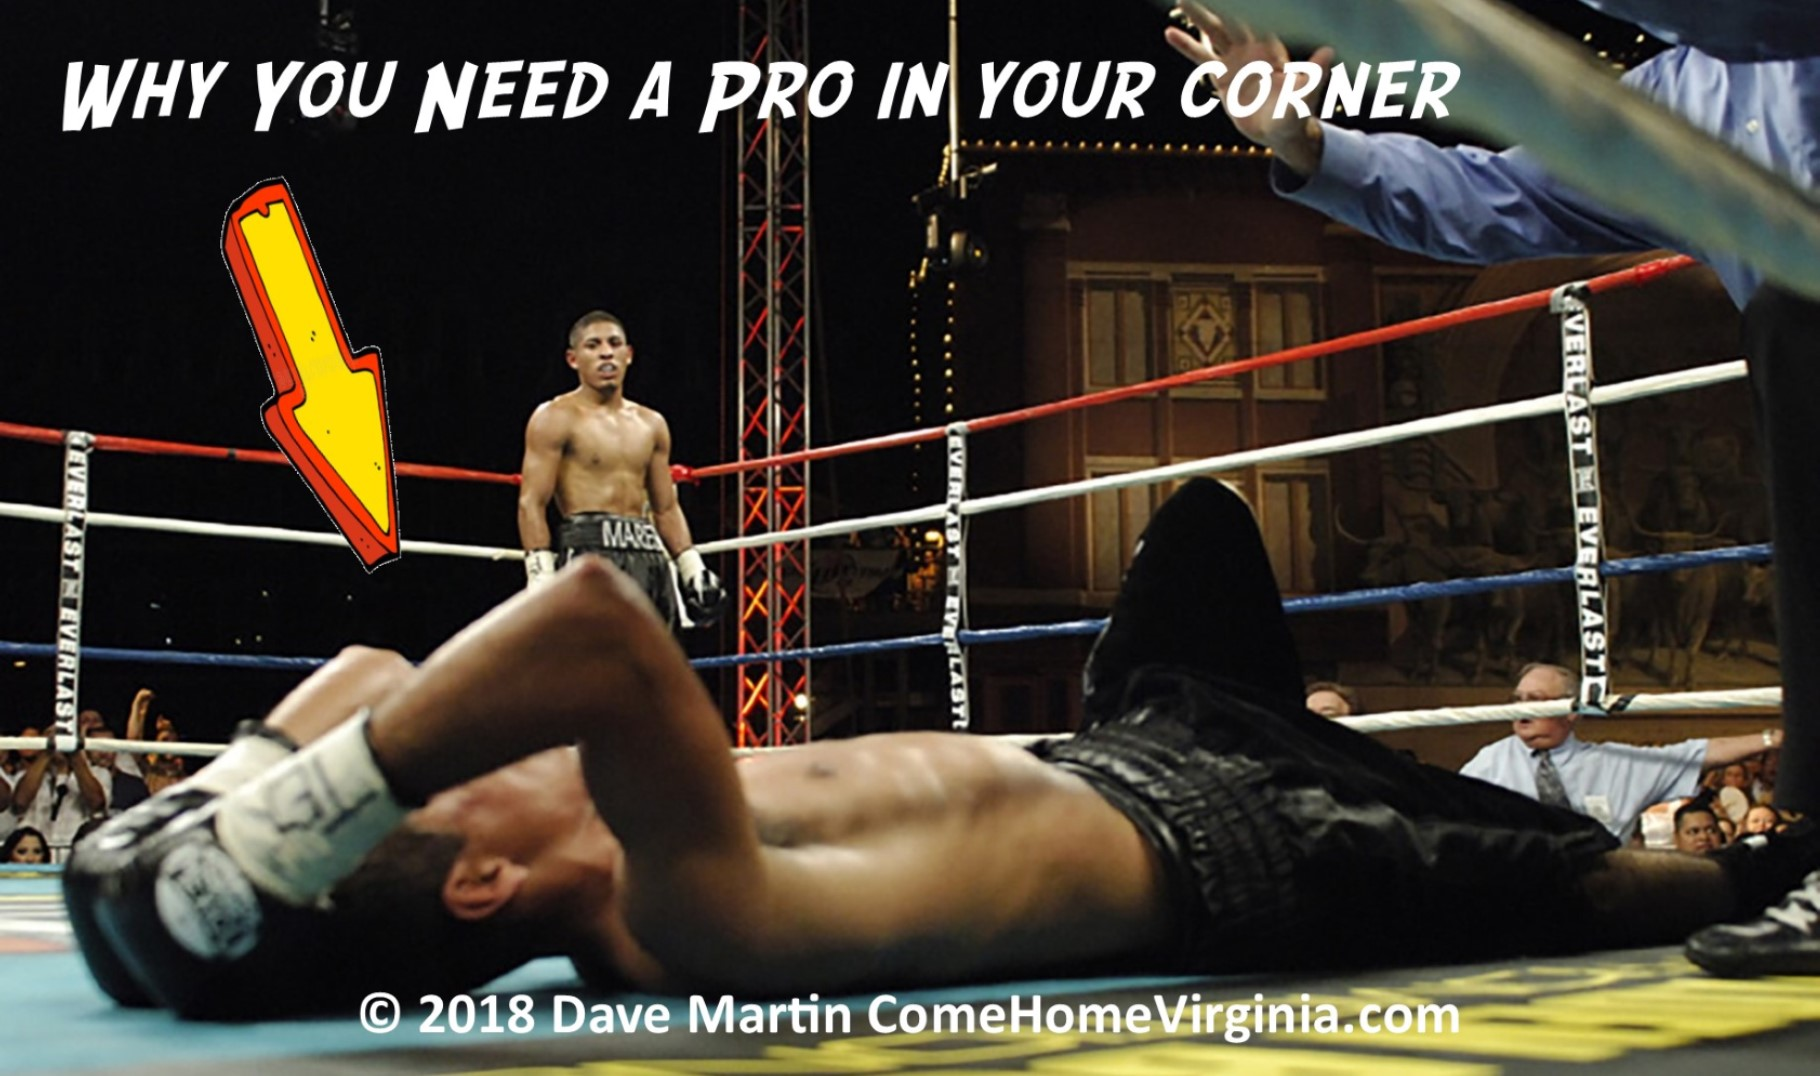 Why You Need a Pro in Your Corner when selling your house